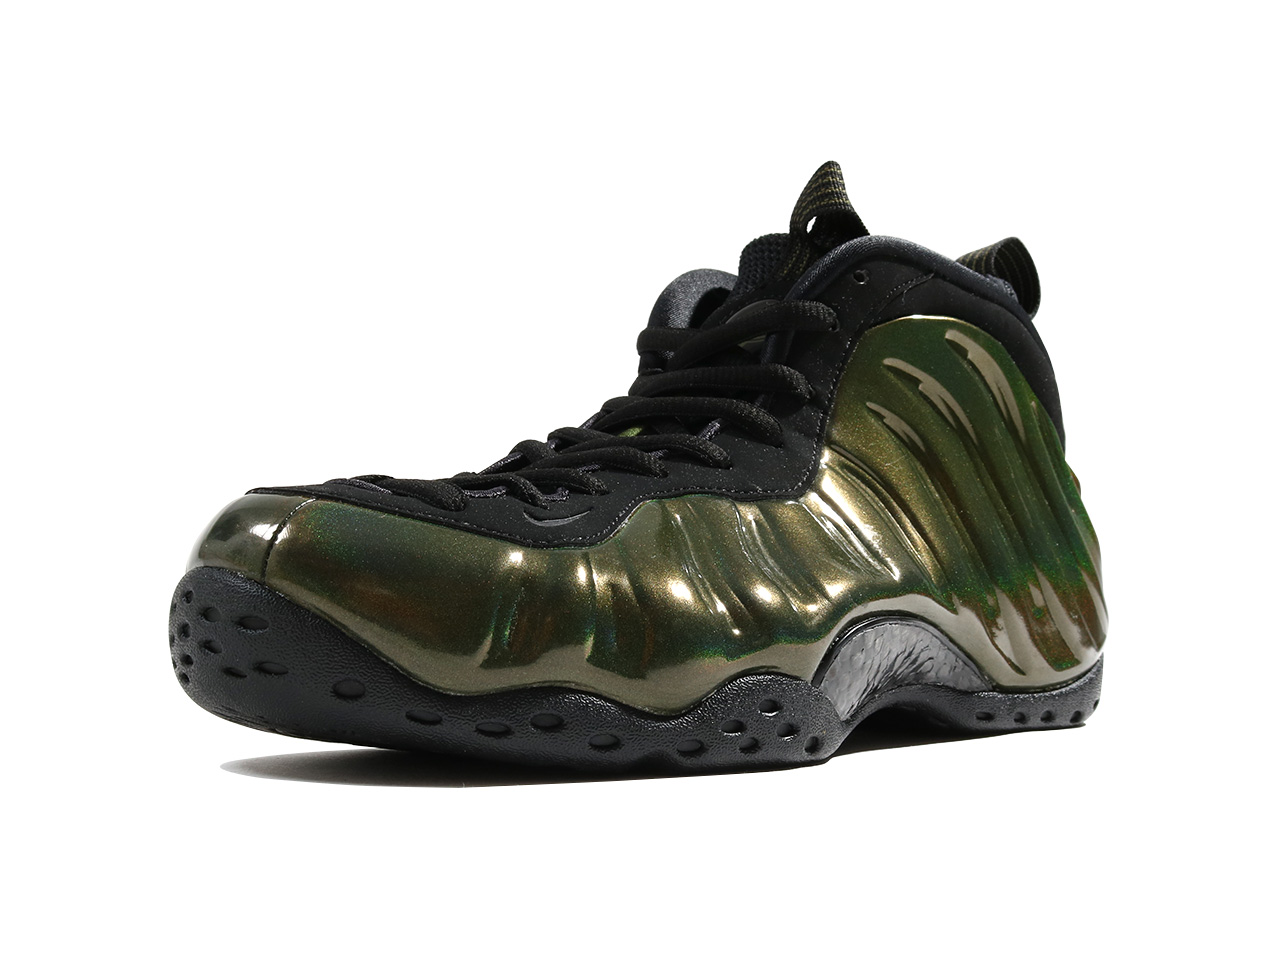 nike_air_foamposite_one_314996_301